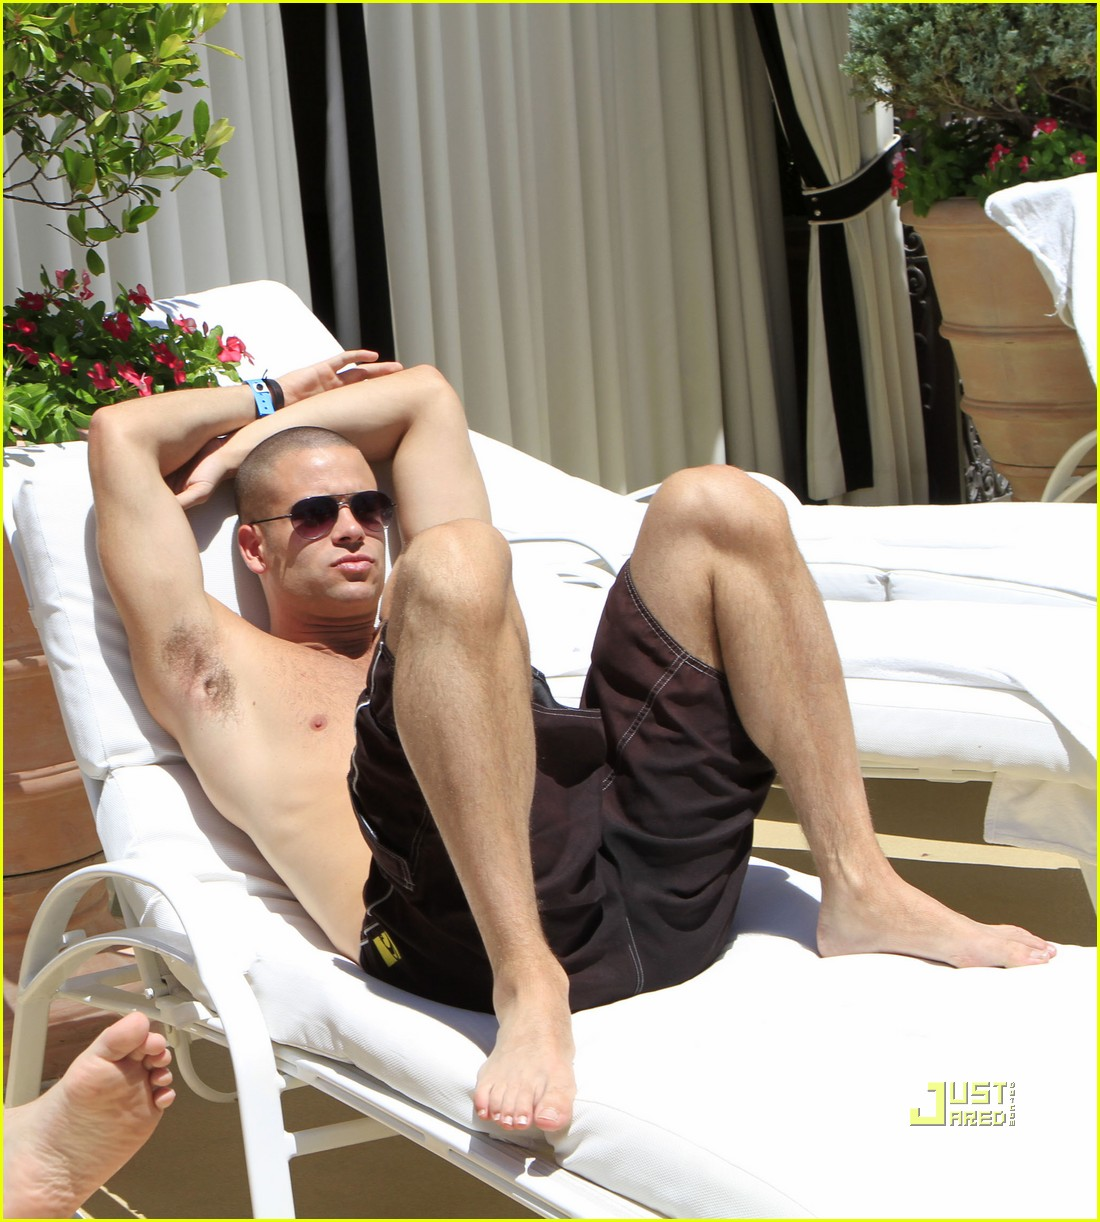 http://1.bp.blogspot.com/_5zib5jYA2yA/TDC-Ik6IbtI/AAAAAAAABlo/dpLVex02bsE/s1600/shirtless-mark-salling-4th-of-july-05.jpg